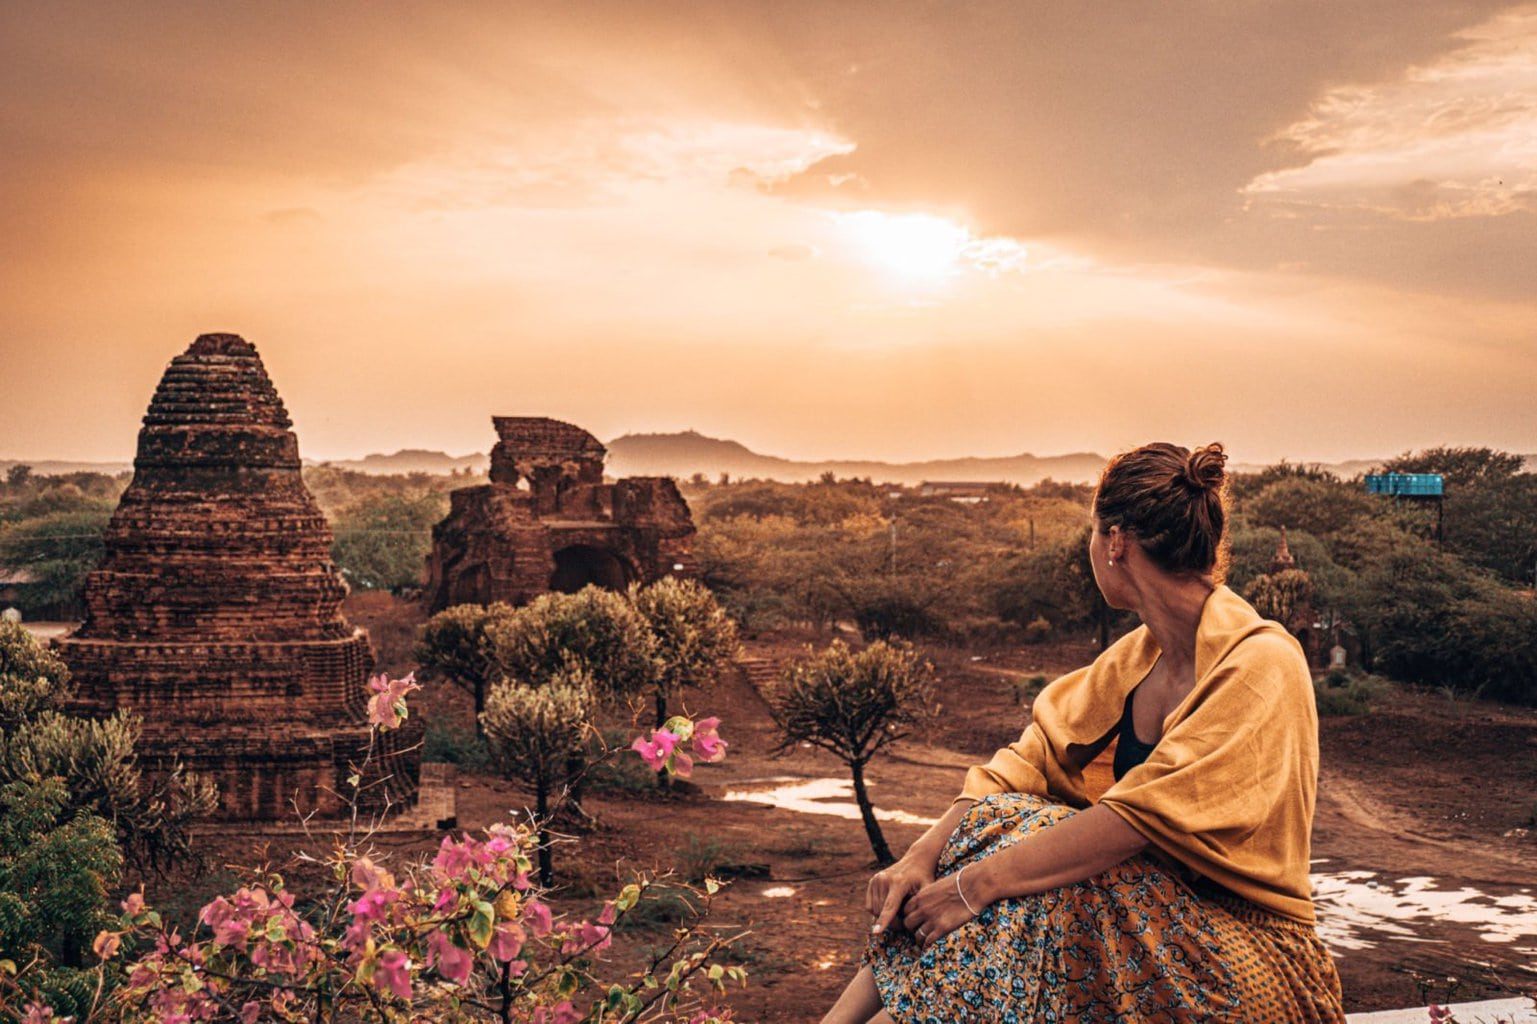 Lee looking out over temples Bagan